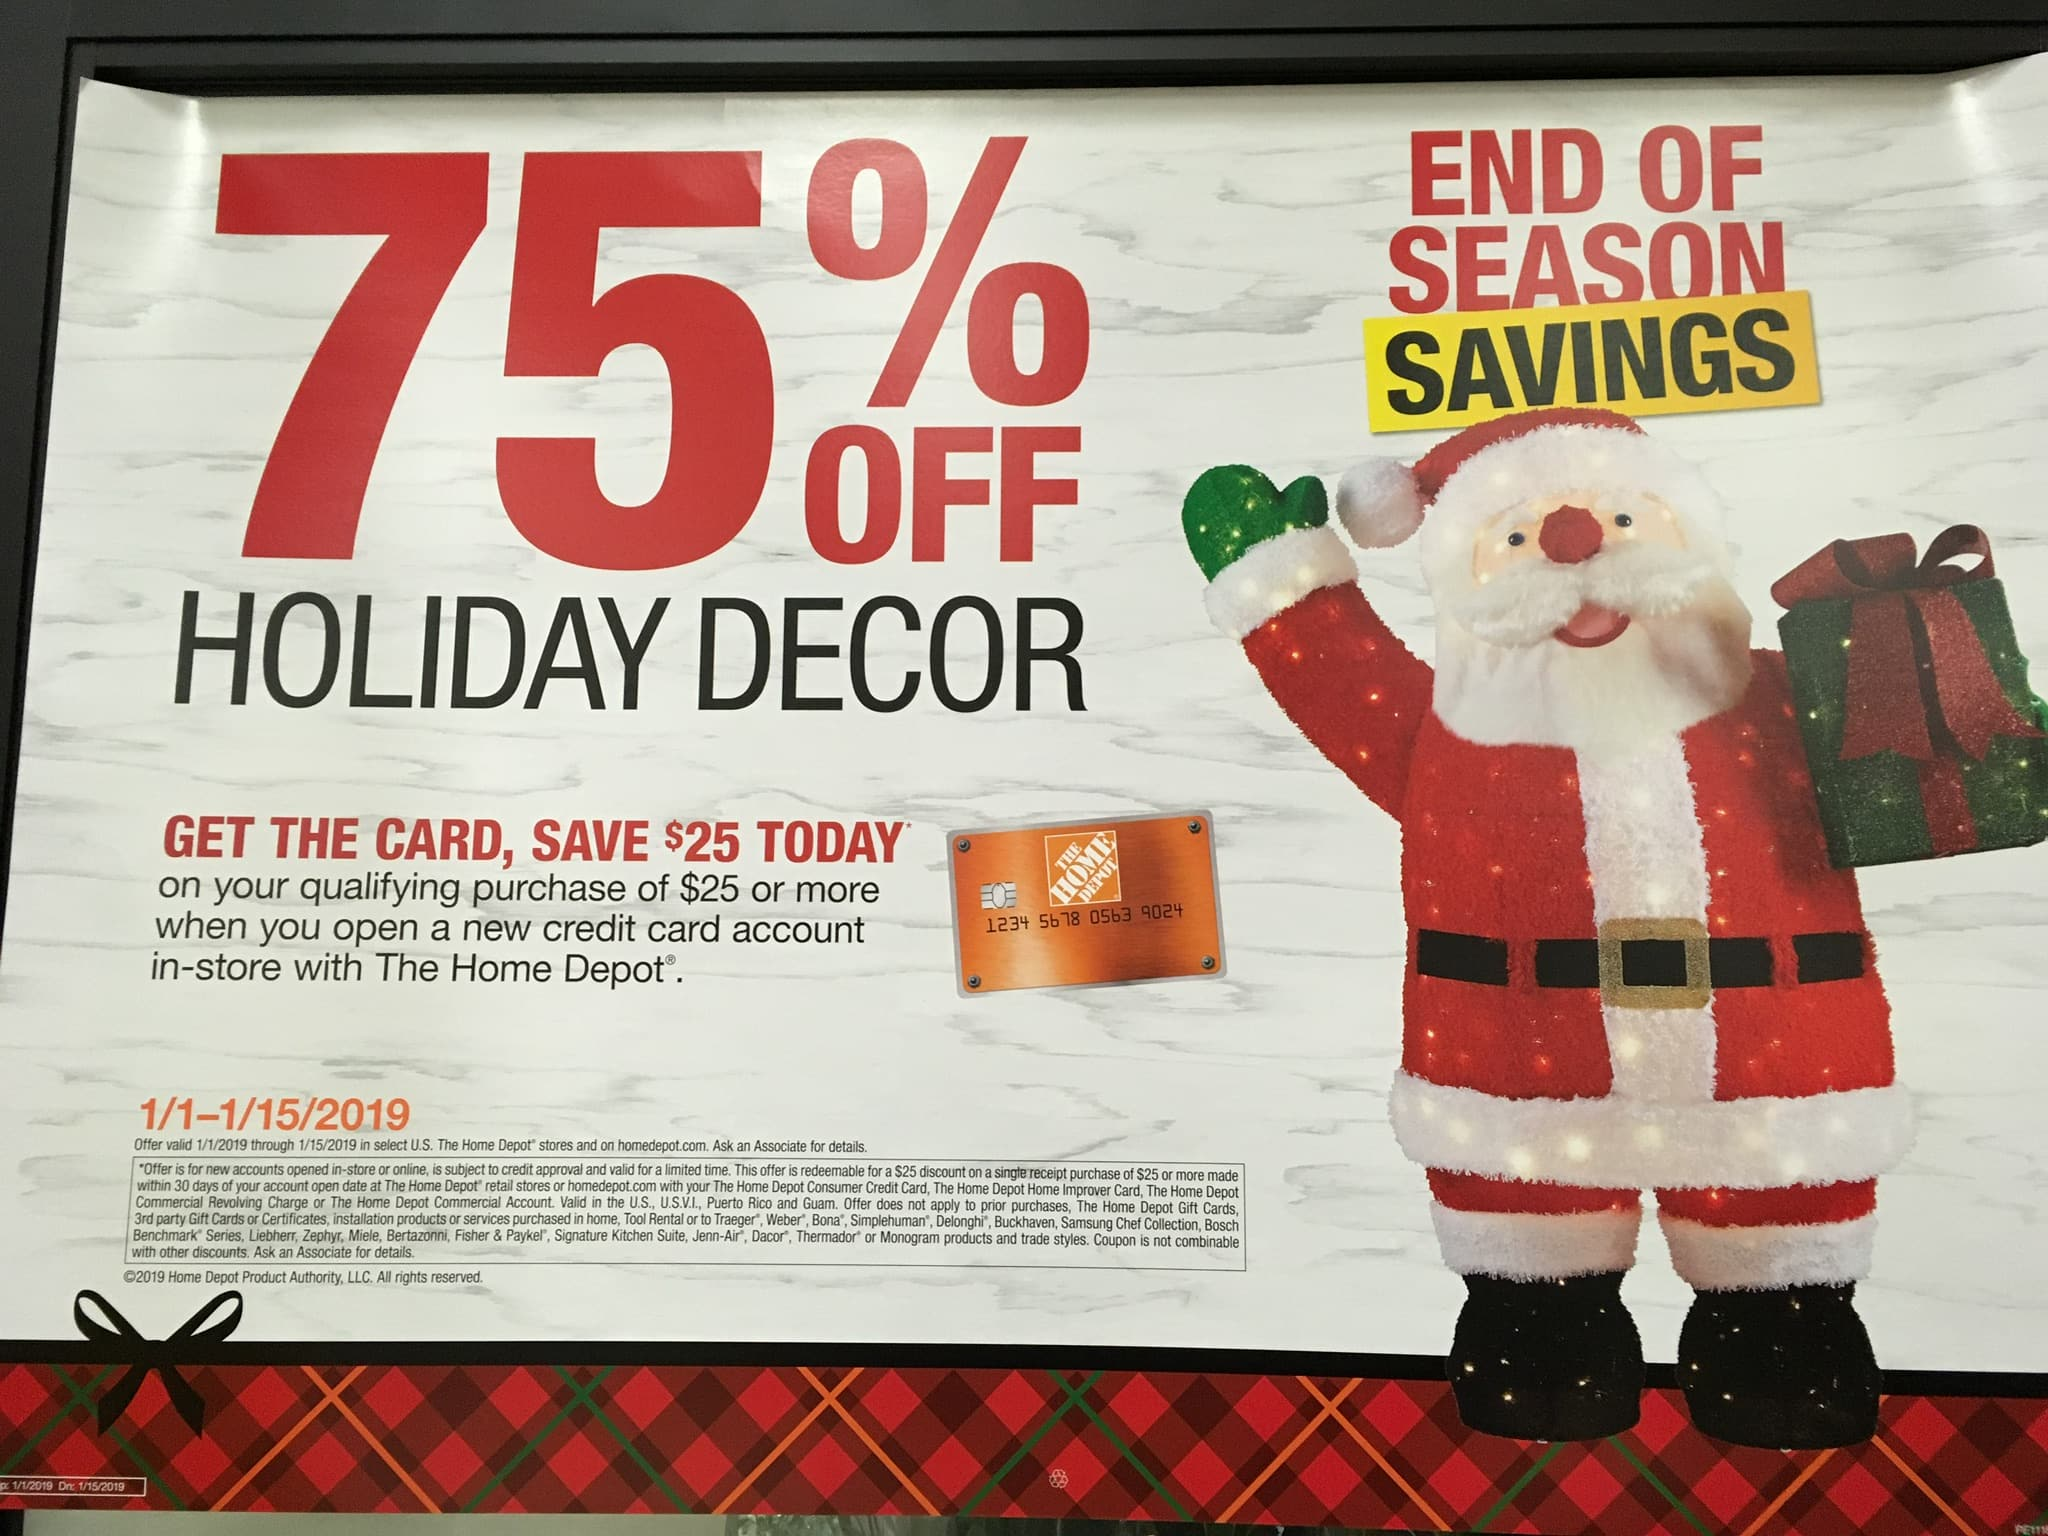 Home Depot 75% Off Holiday (Christmas) Decorations